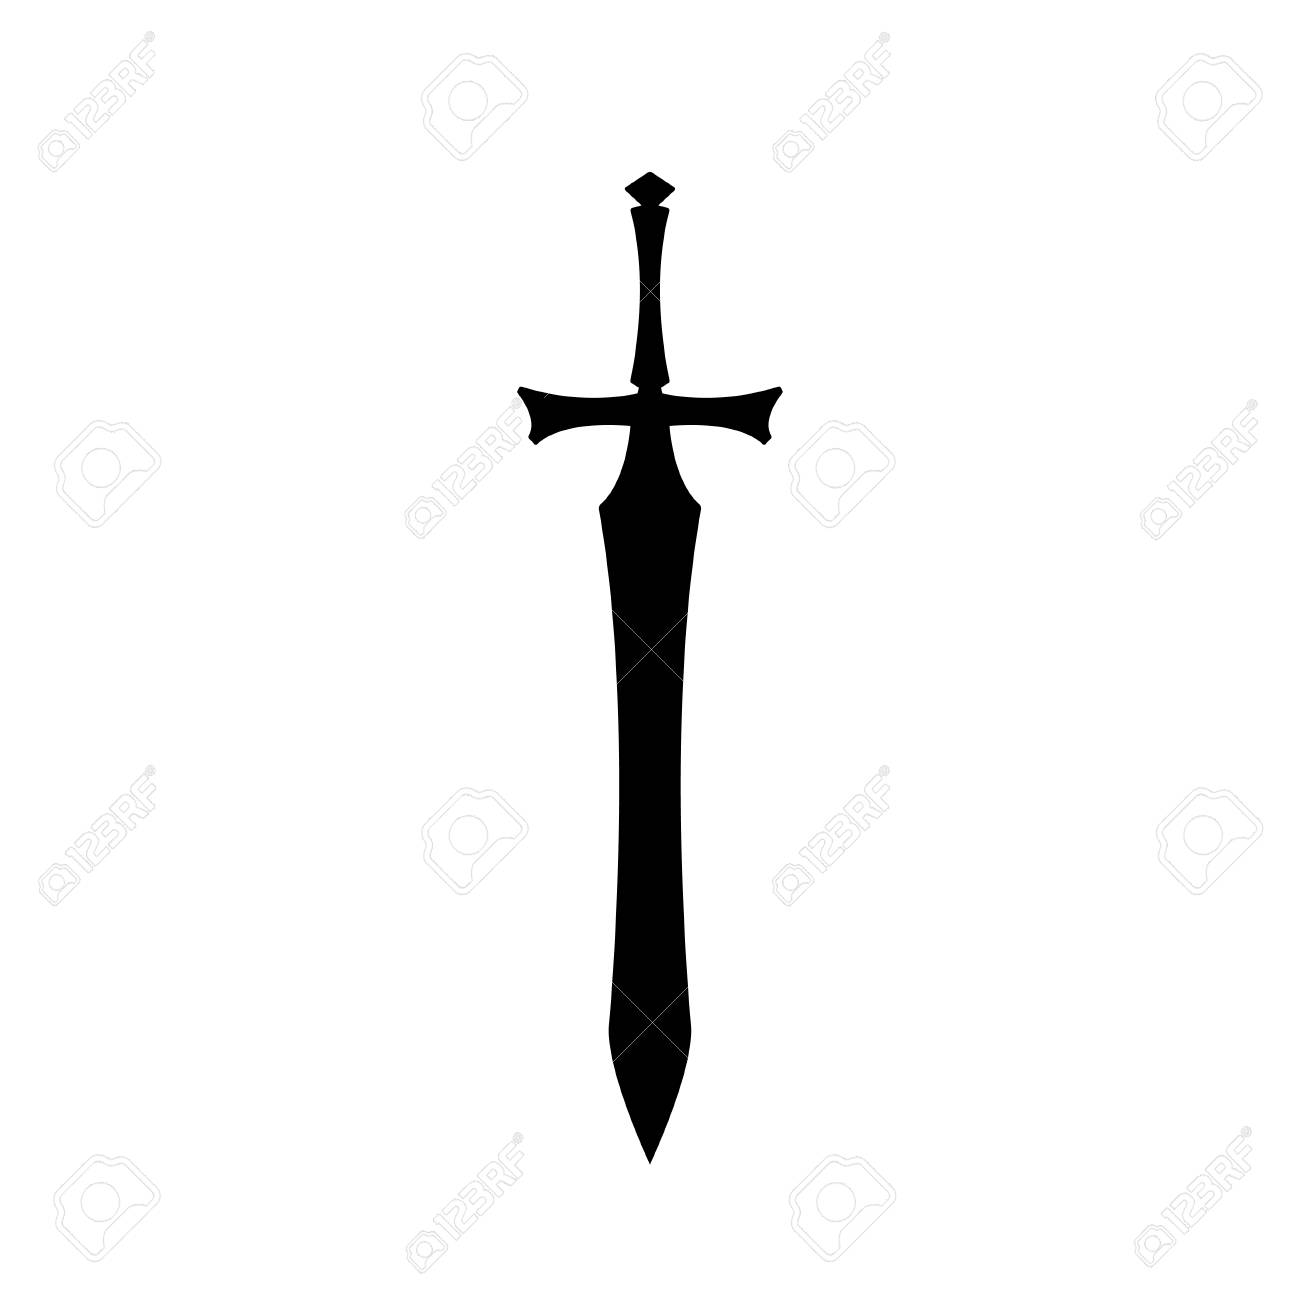 Black silhouettes of medieval knight sword on white background.